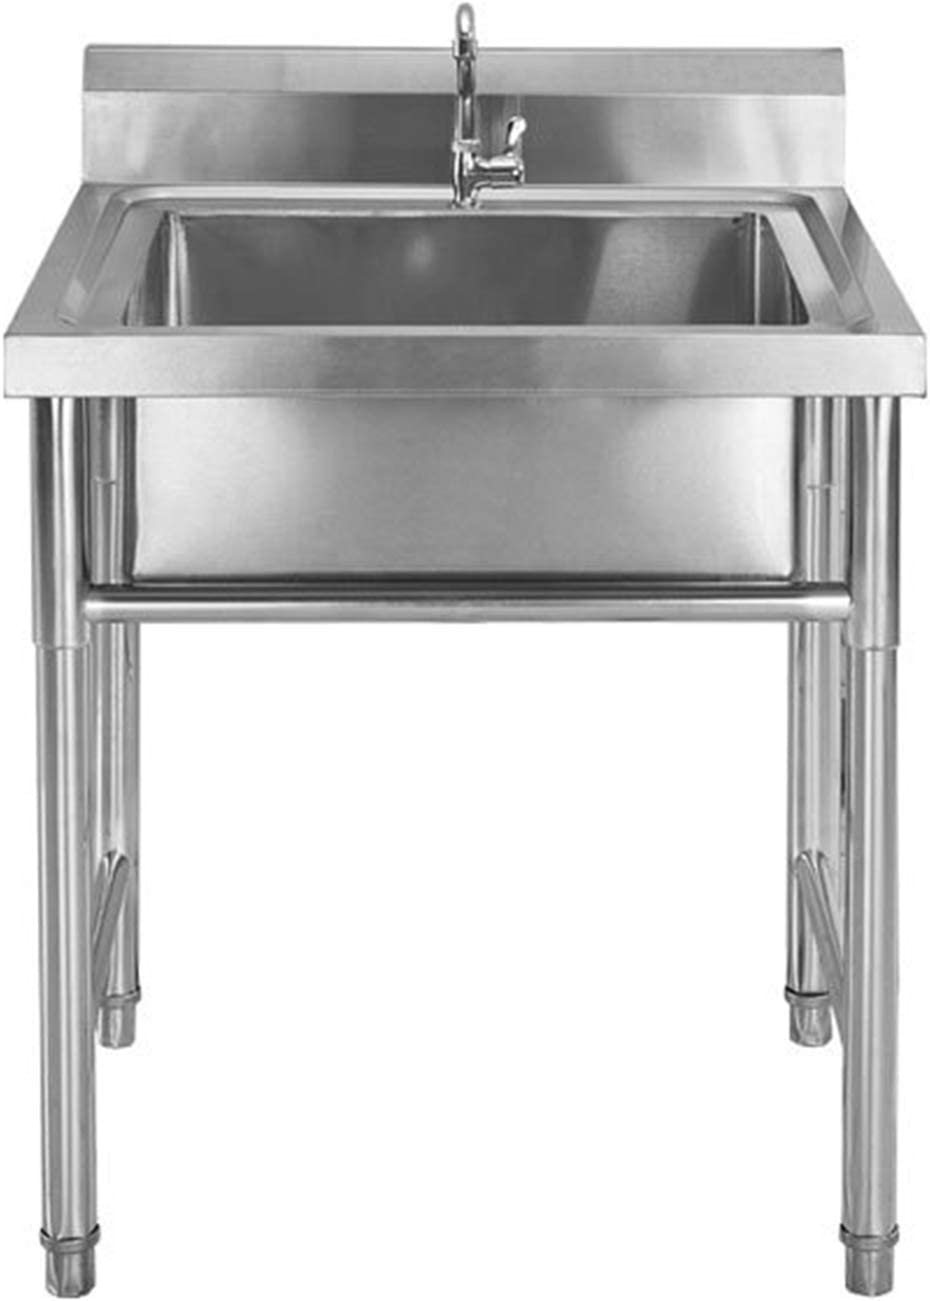 Stainless Steel Prep & Utility Sink, 1 Commercial Compartment Sink for Outdoor Indoor Garage Kitchen Laundry Size 50 X 50 X 80cm